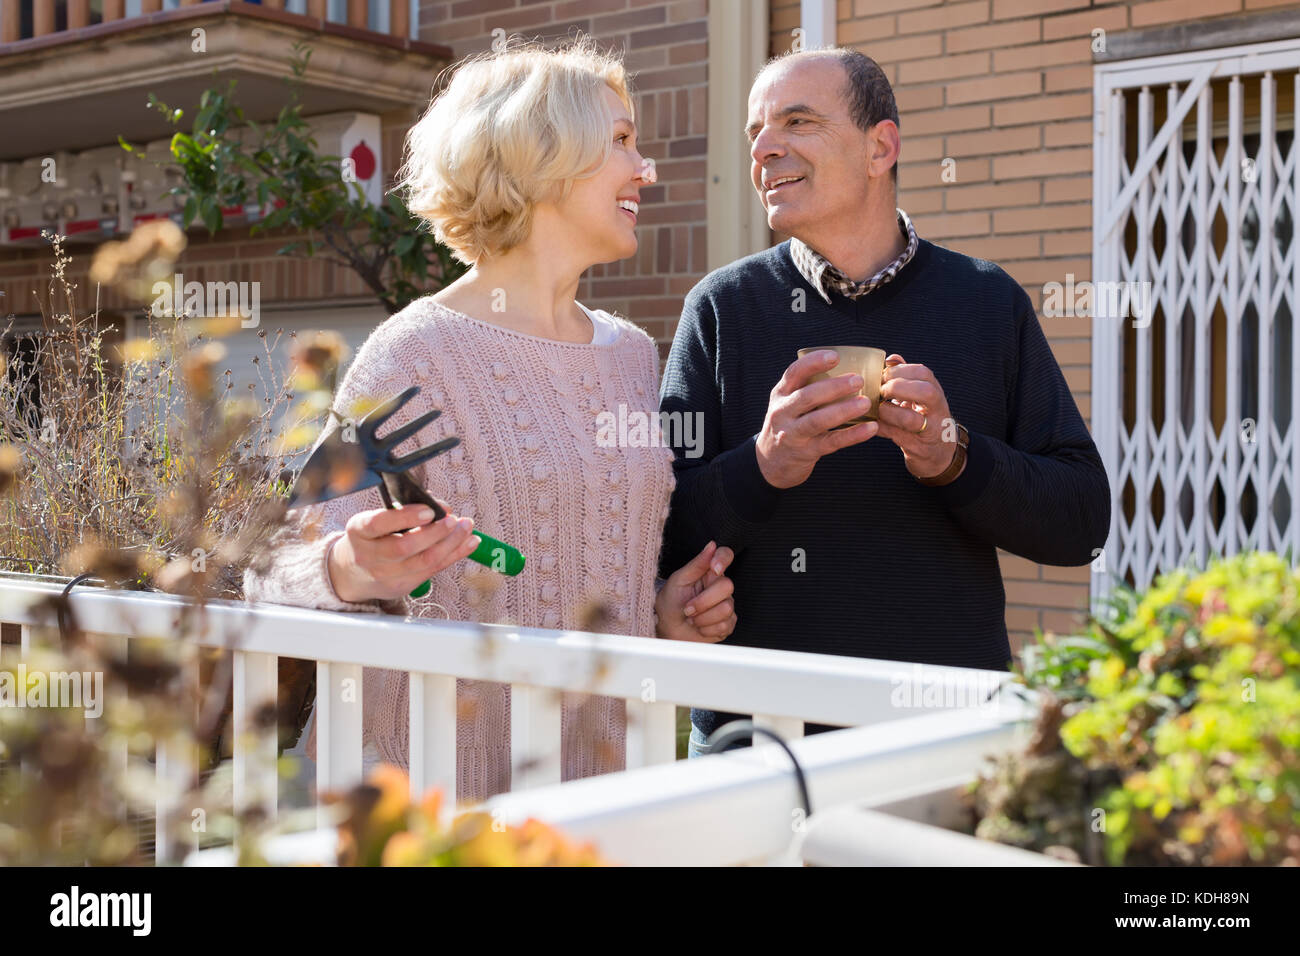 Smiling elderly woman with horticultural sundry and aged man drinking tea in patio Stock Photo